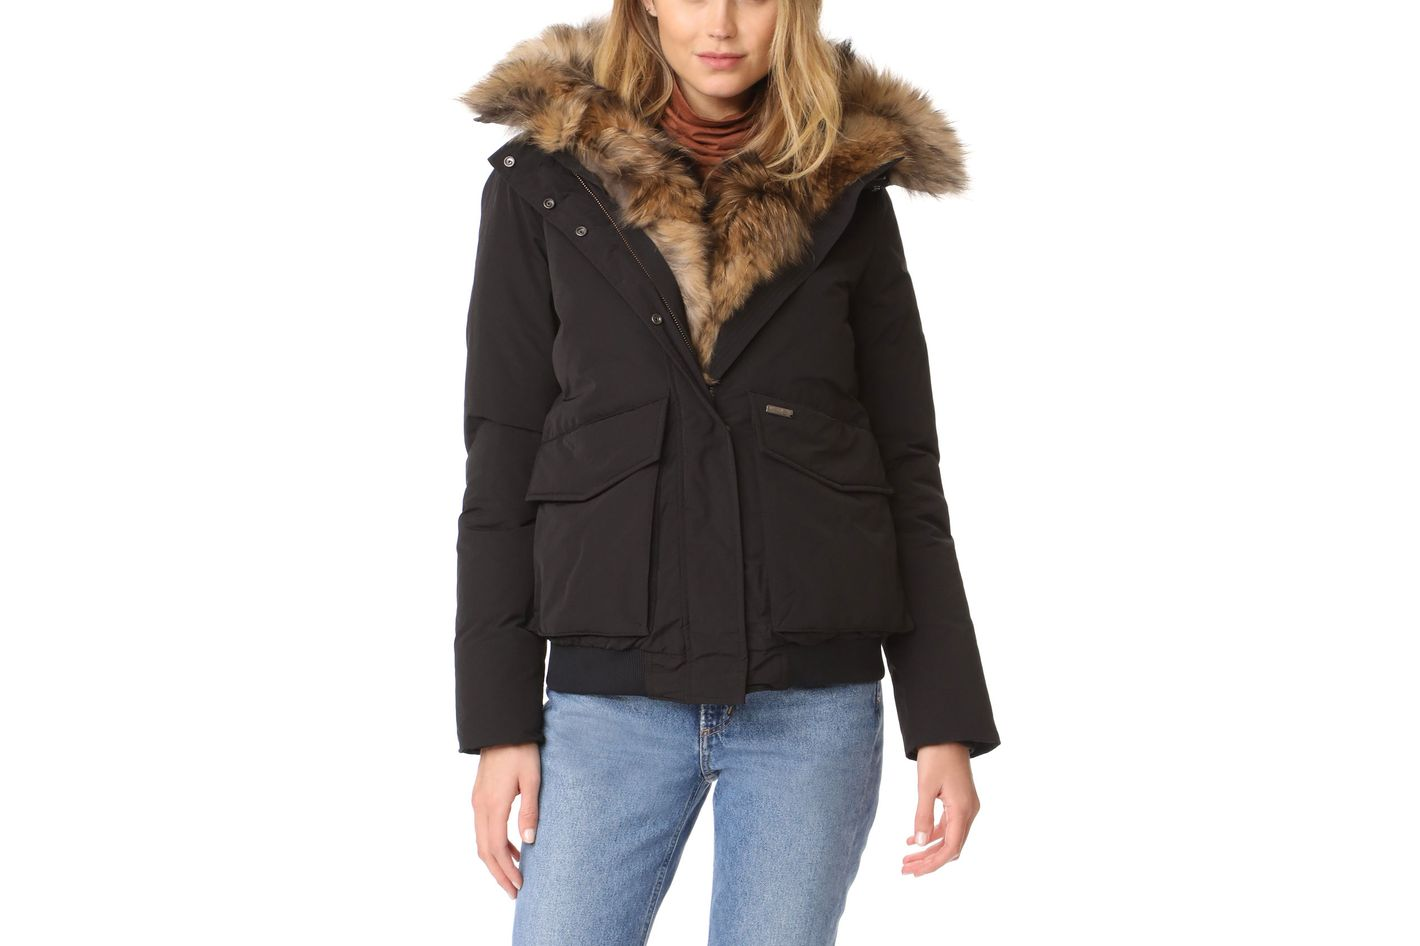 7ef5d6607 Best Coats, Jackets On Sale at Shopbop Black Friday Sale